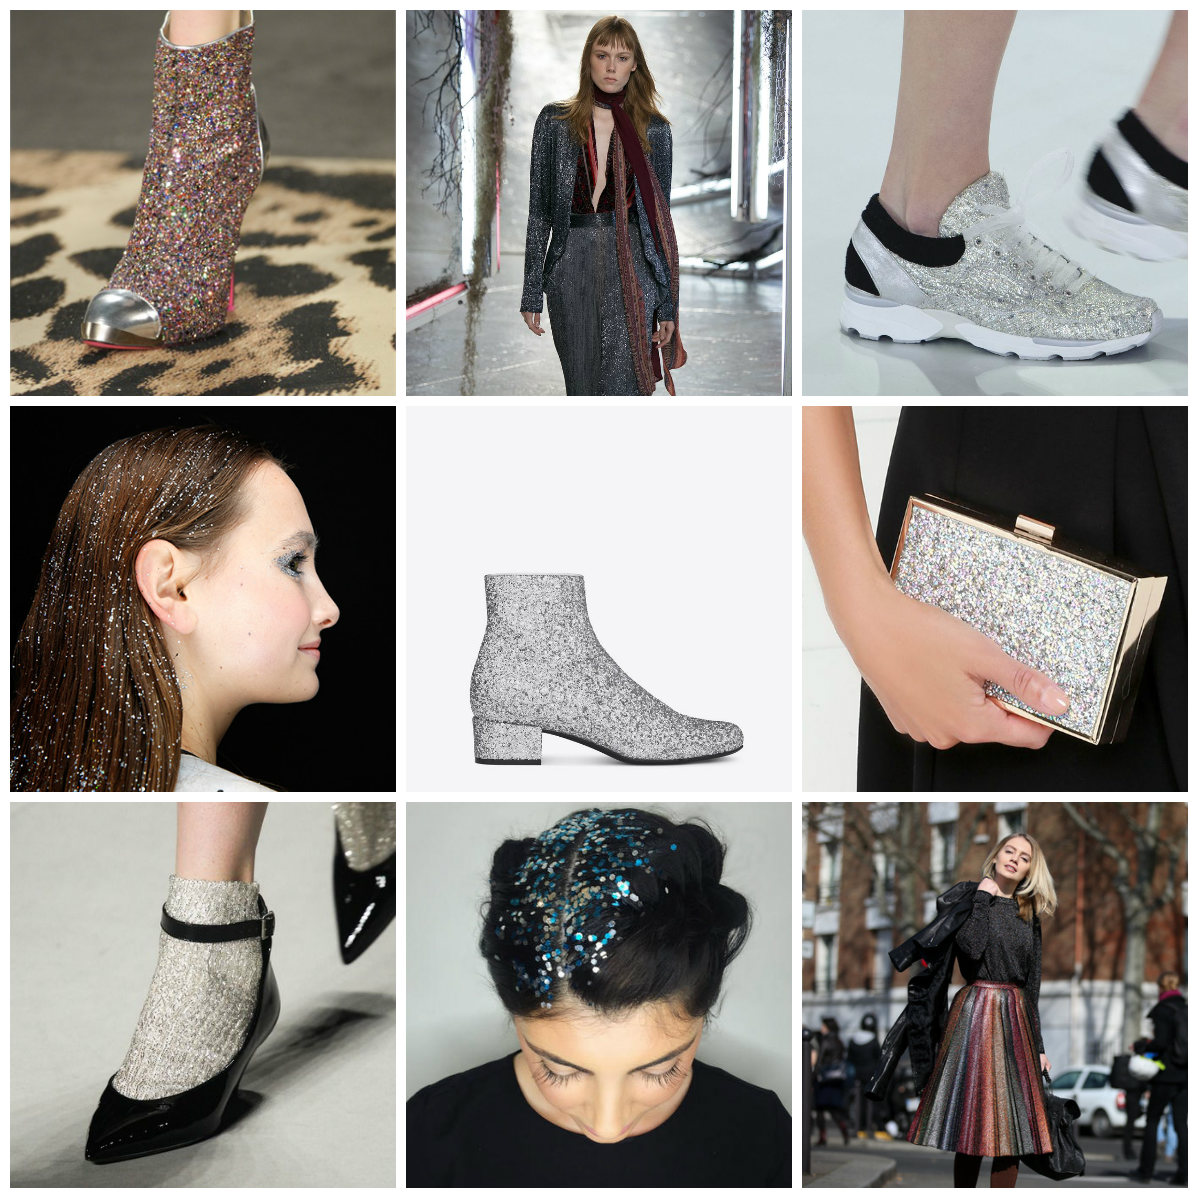 Feestdagen 'What to wear': Glitter Glam – SCHOENEN & FASHION INSPIRATIE